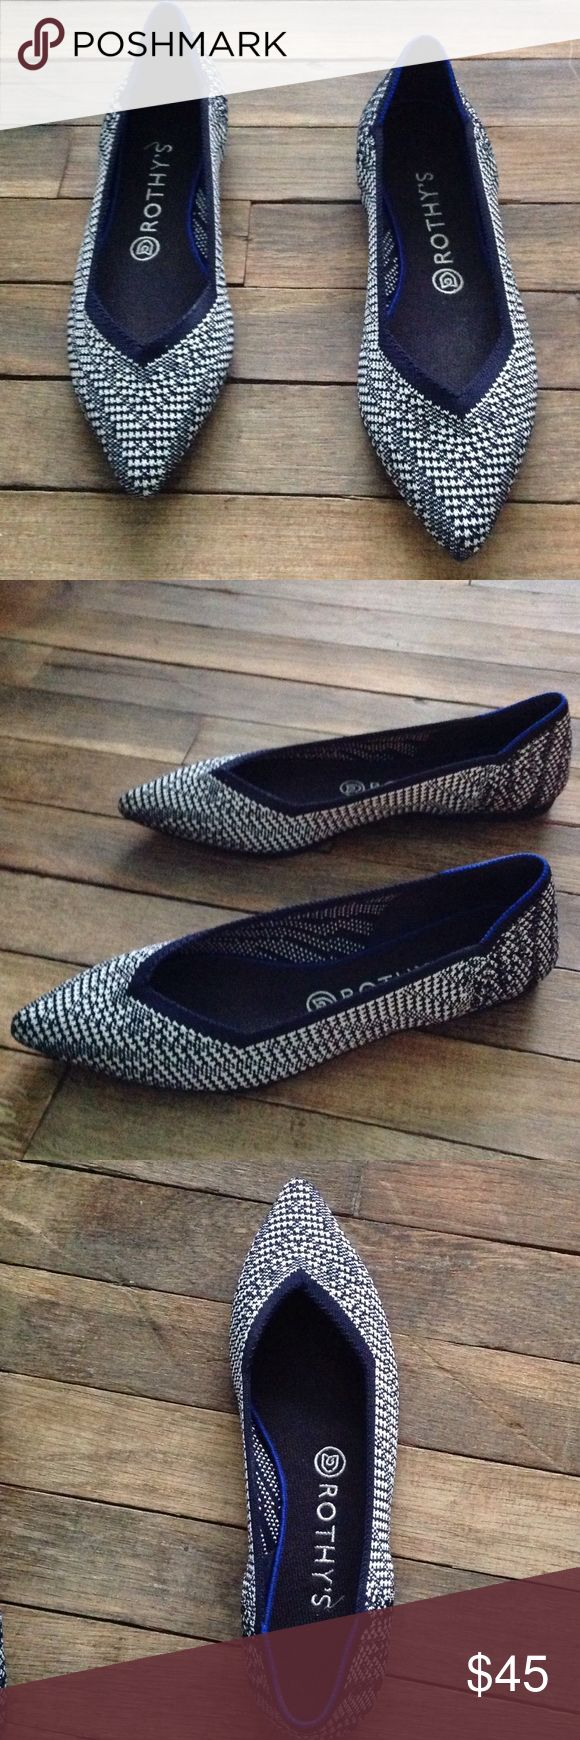 ROTHYS navy blue and white flats ROTHY's sustainable, washable flats made from recycled materials. Navy blue and white with a brighter trim of blue on the heel. In excellent condition. ROTHYS Shoes Flats & Loafers